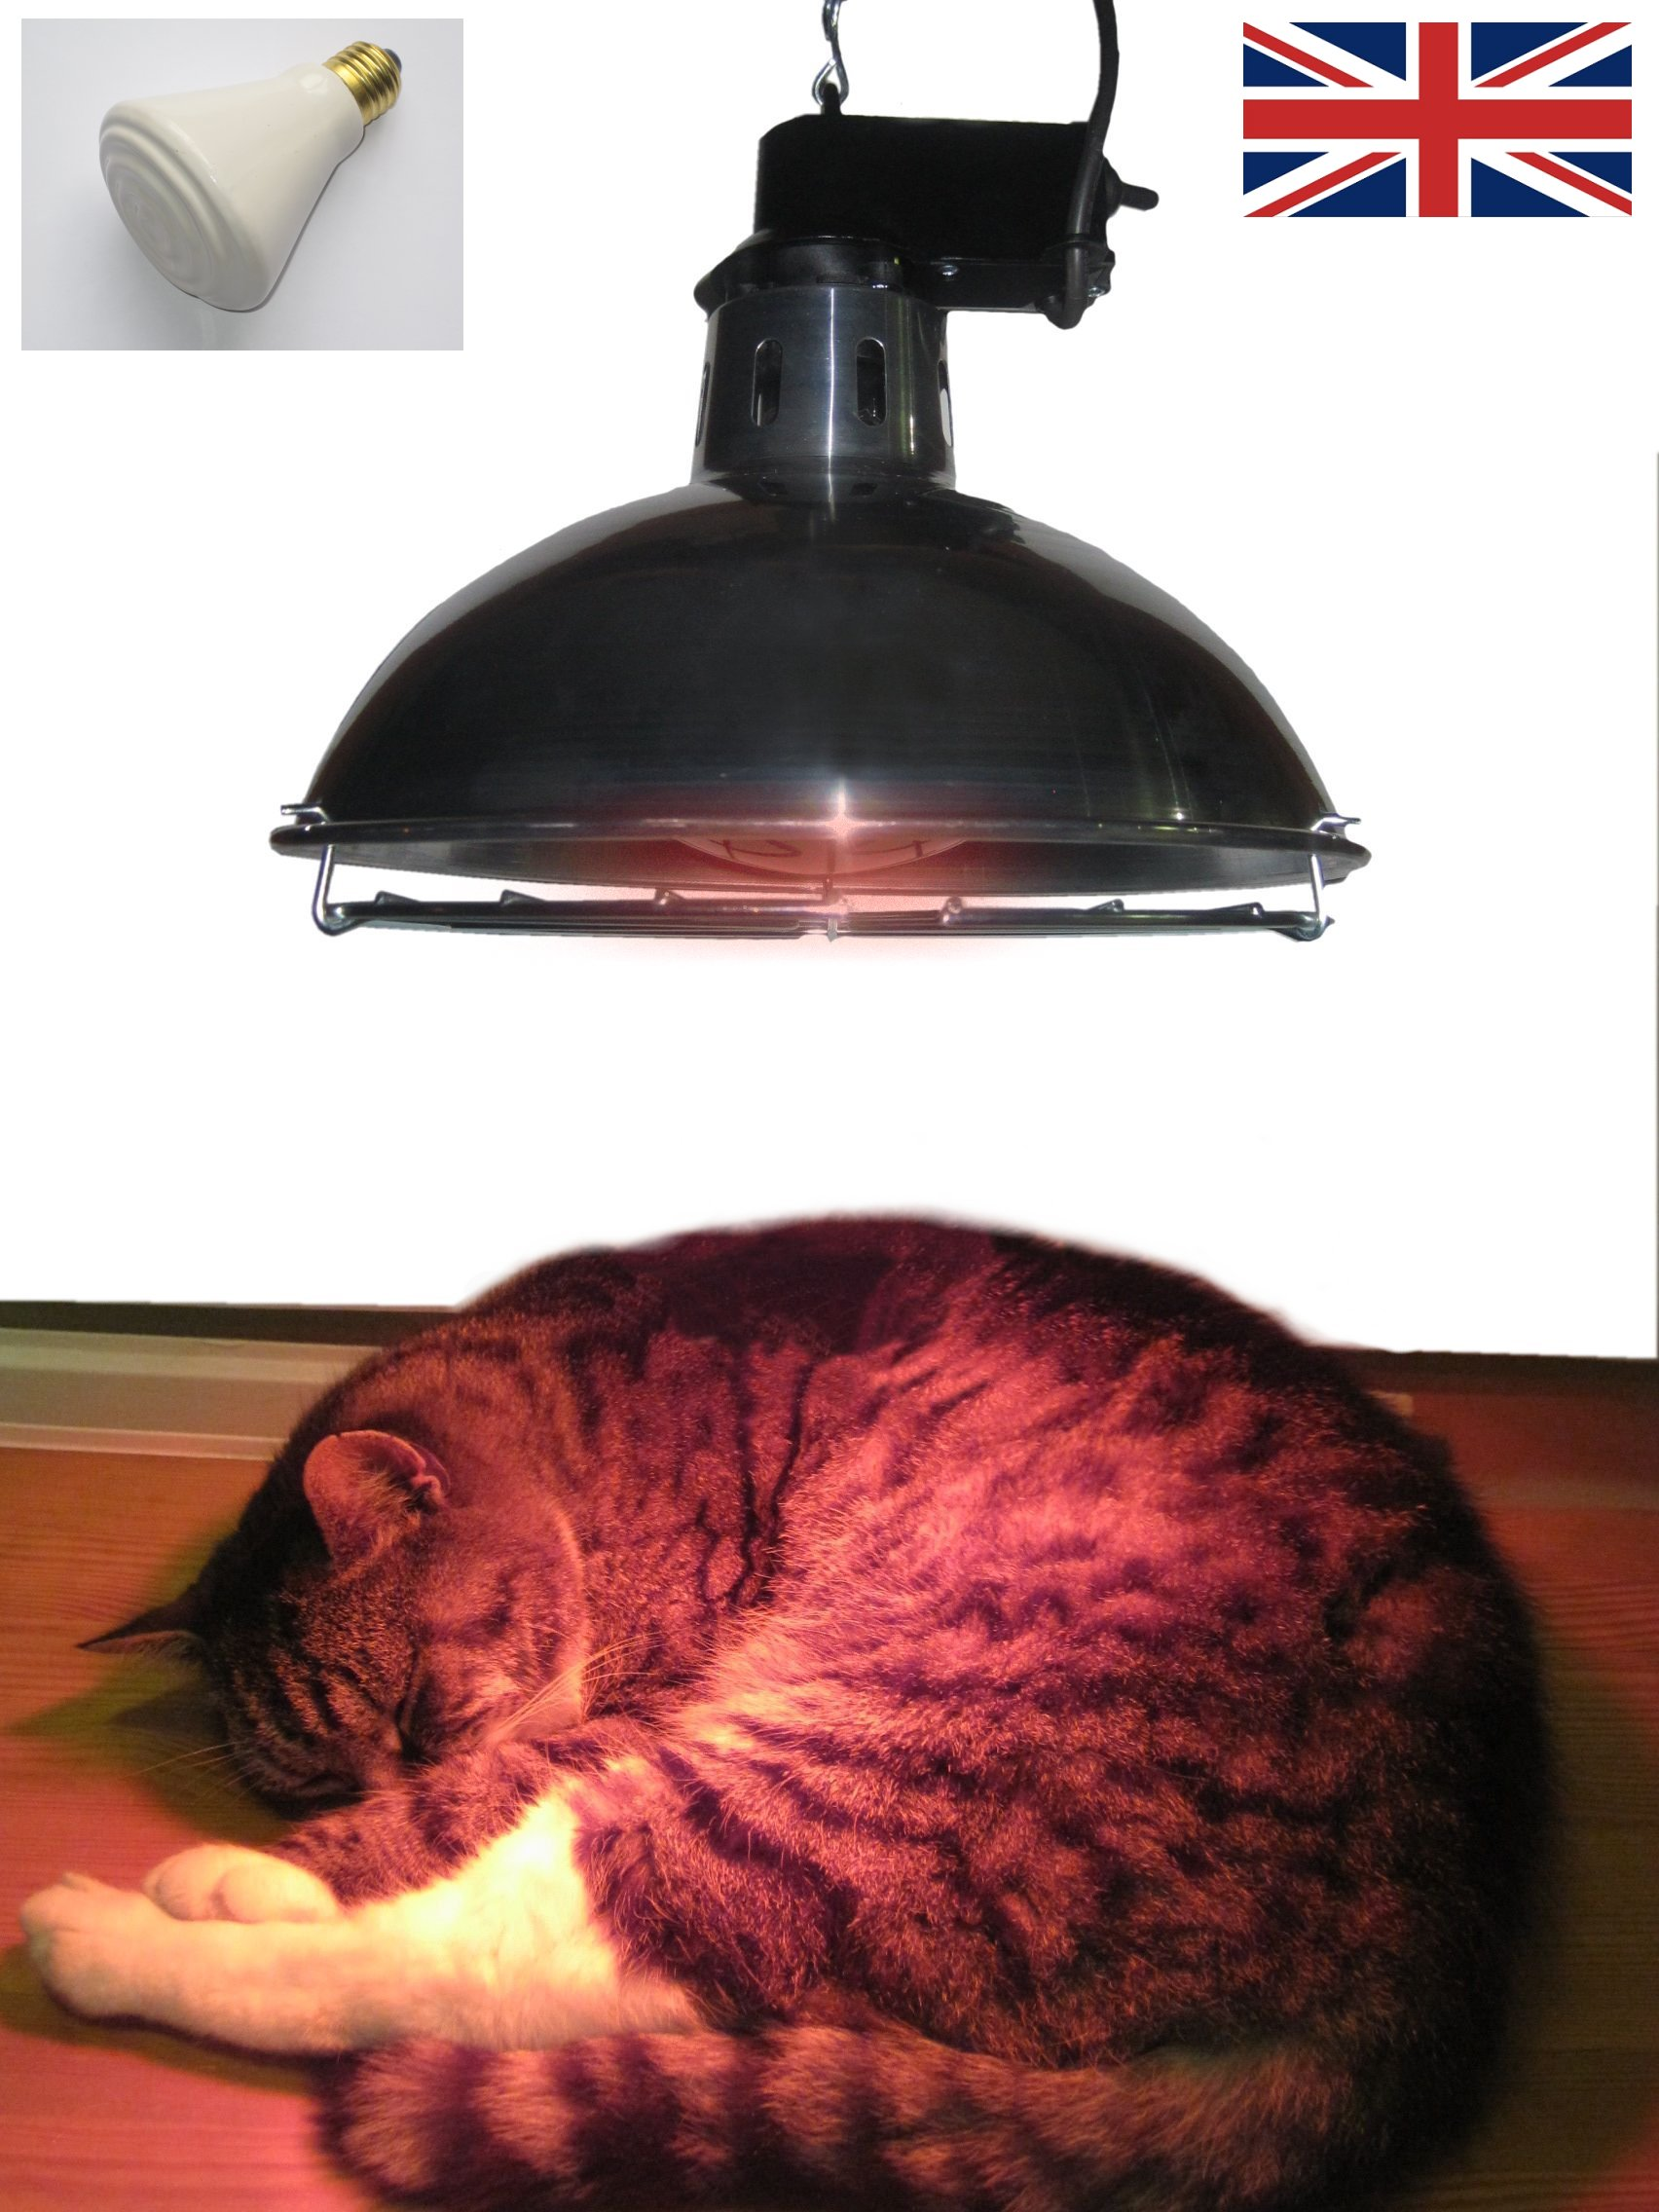 Leisure Heating Pet Heater with 250W Dull Emitter and 2 Heat Settings